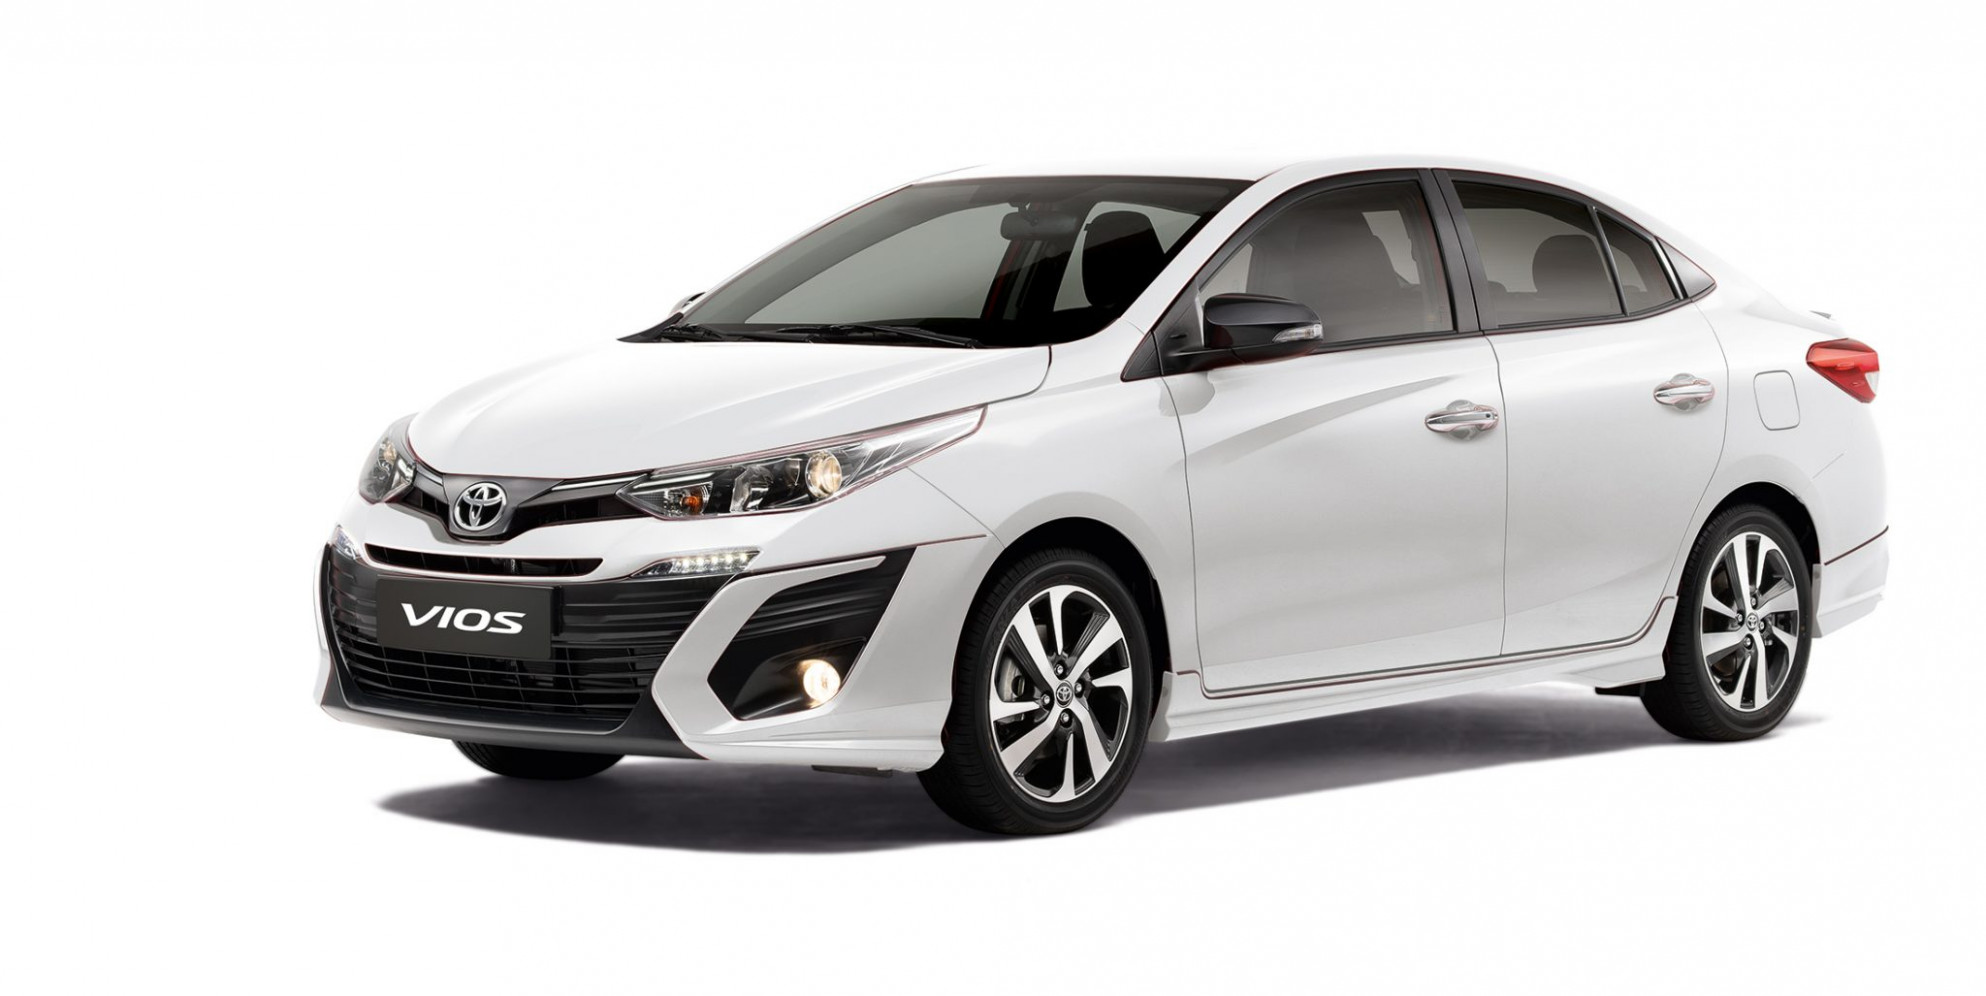 Toyota Vios 11 Philippines Price, Specs and Promos